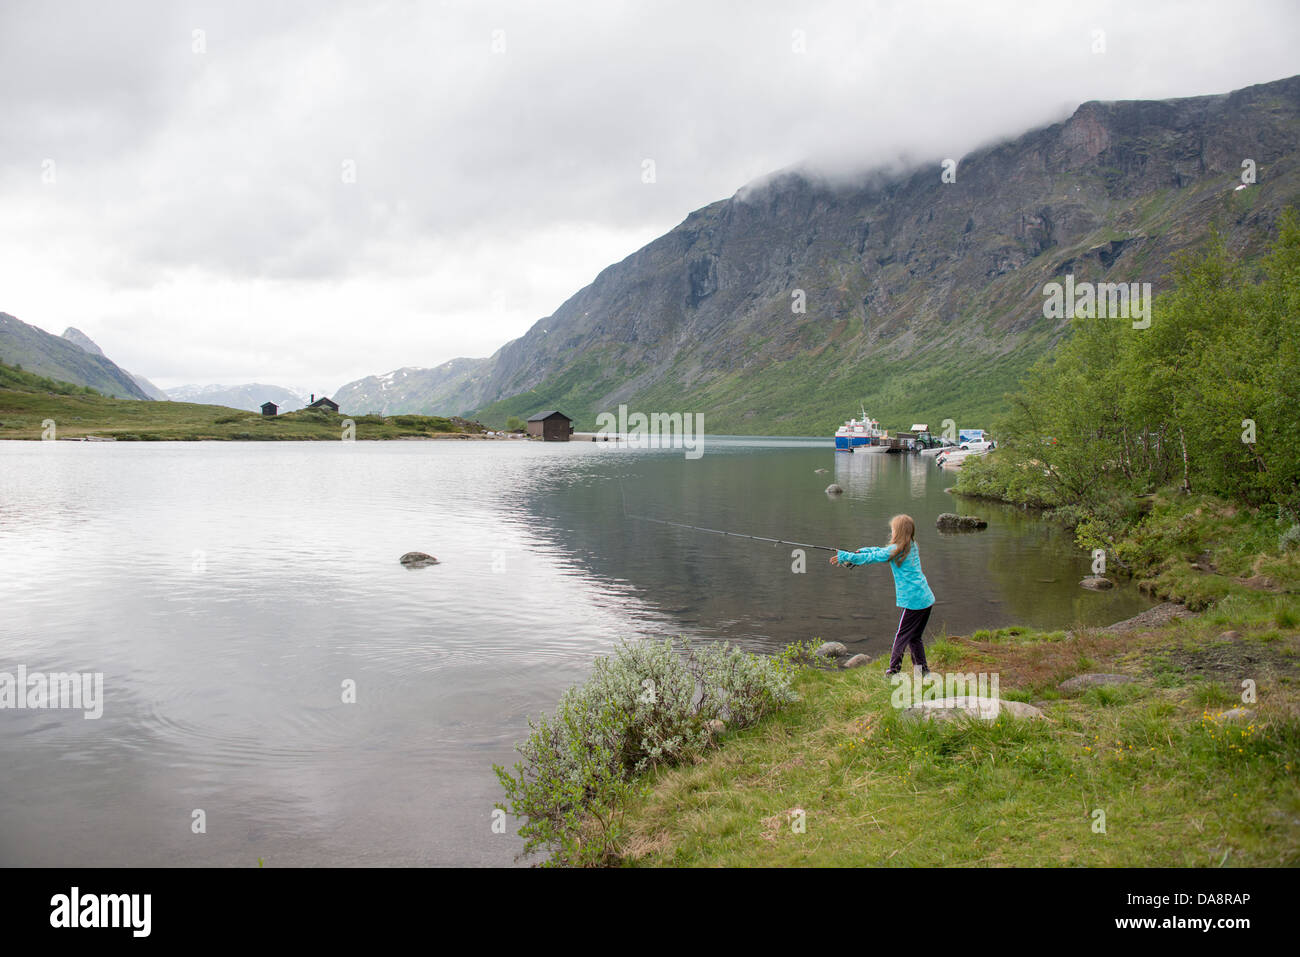 Fishing at the shores of the Gjende lake in Jotunheimen with the famous Besseggen hiking route in the background - Stock Image